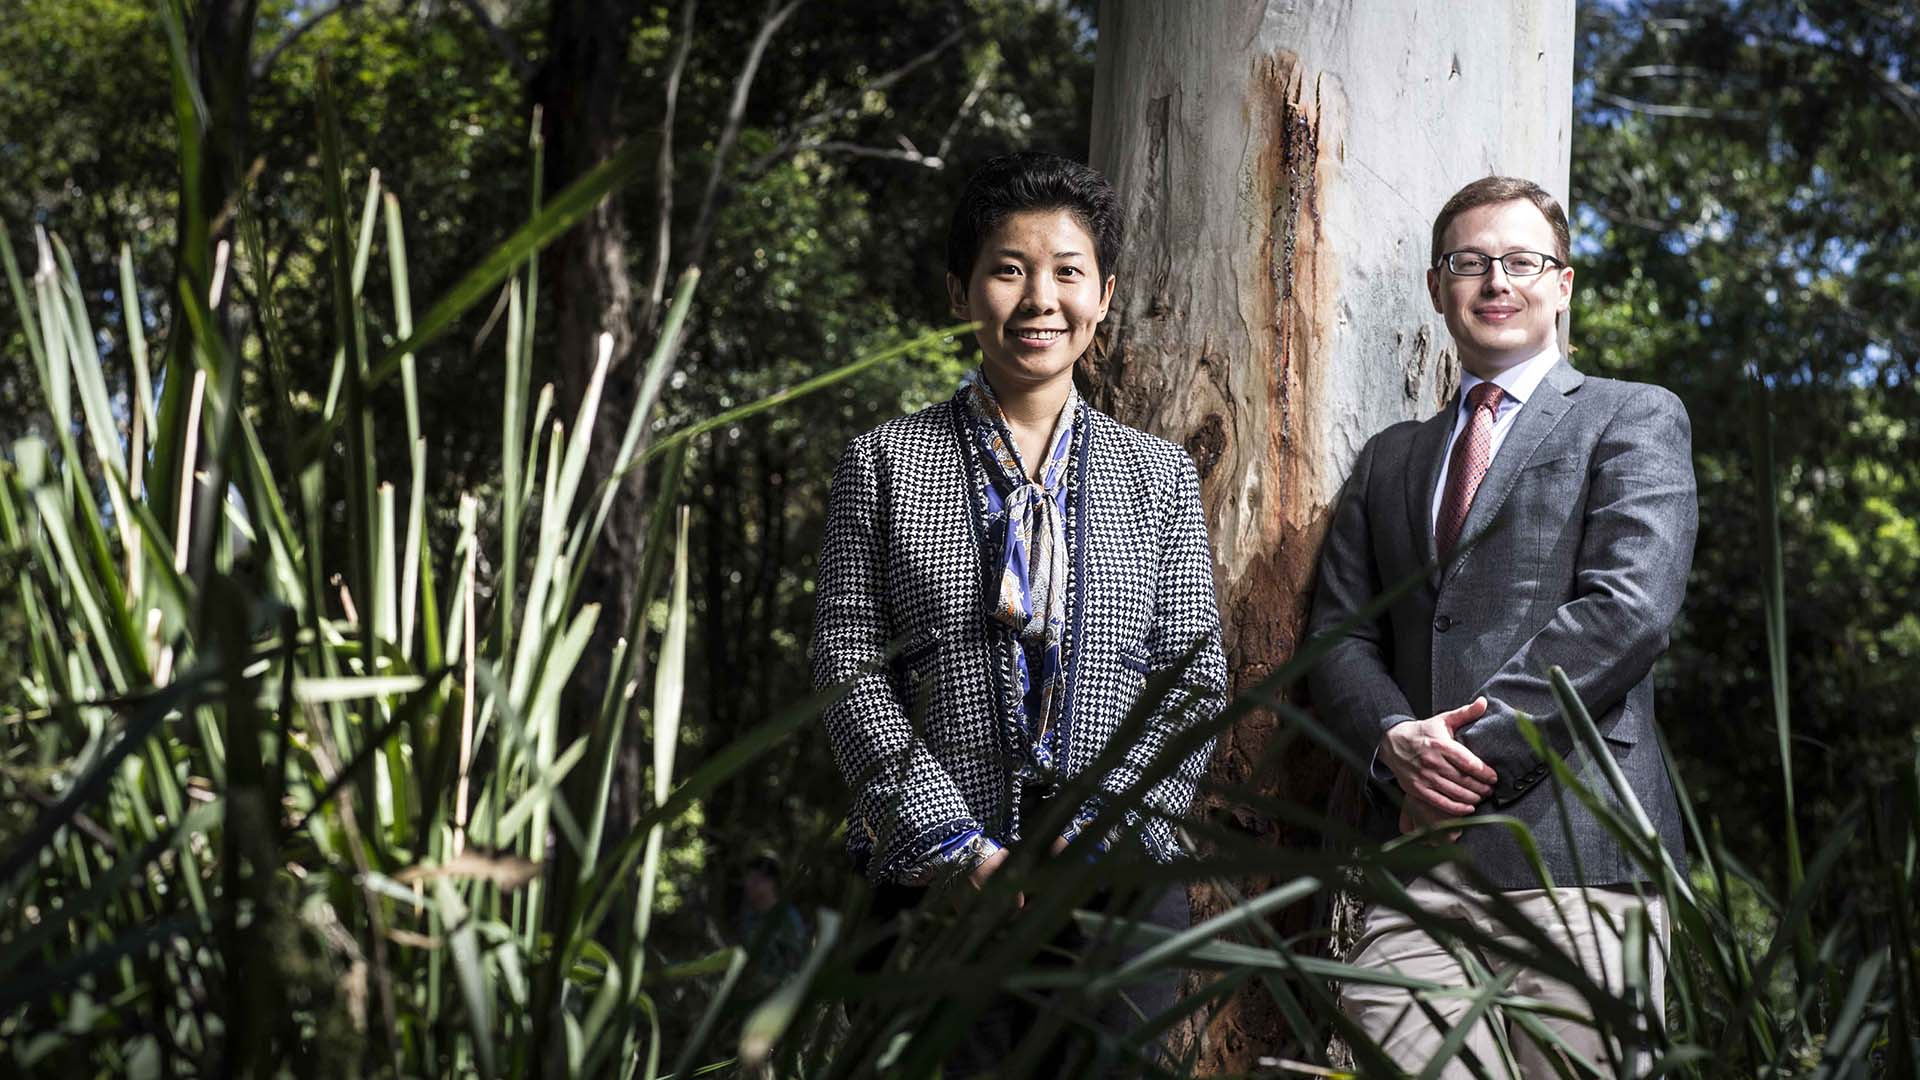 Urban trees found to improve mental and general health